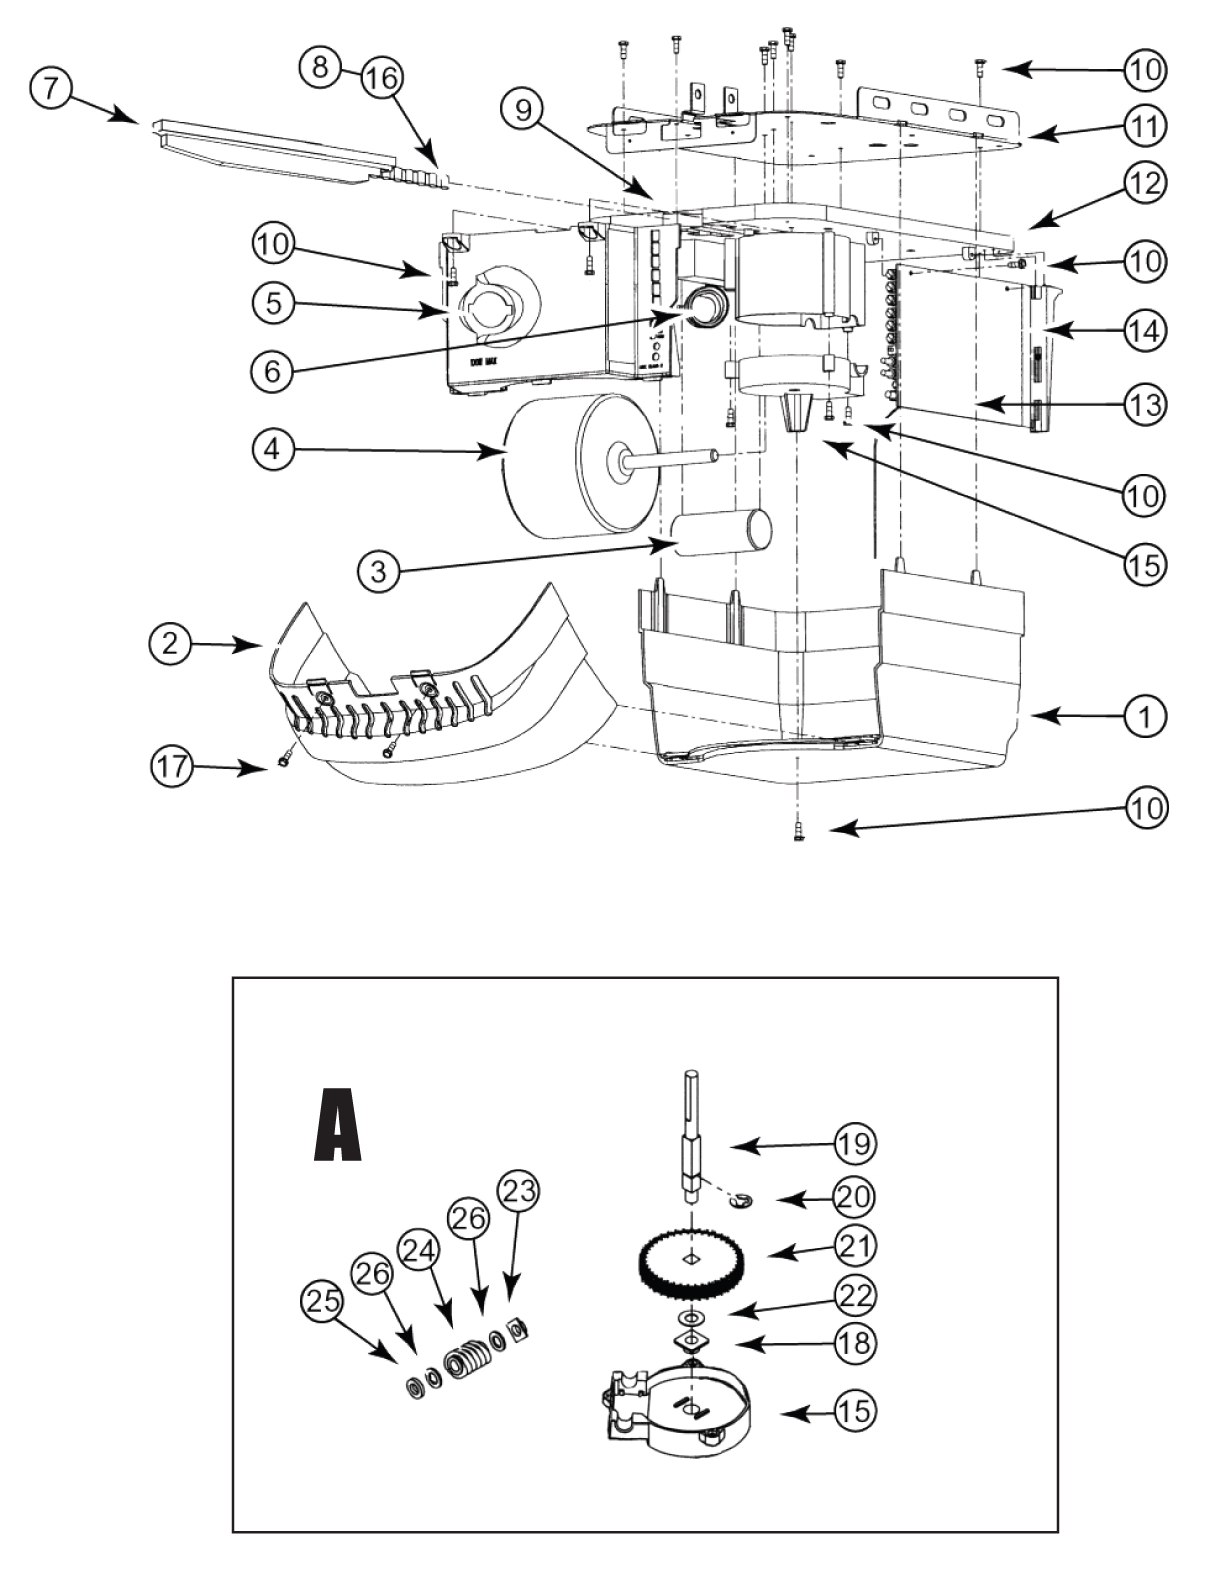 Search Parts for the Python Chain Glide Motor